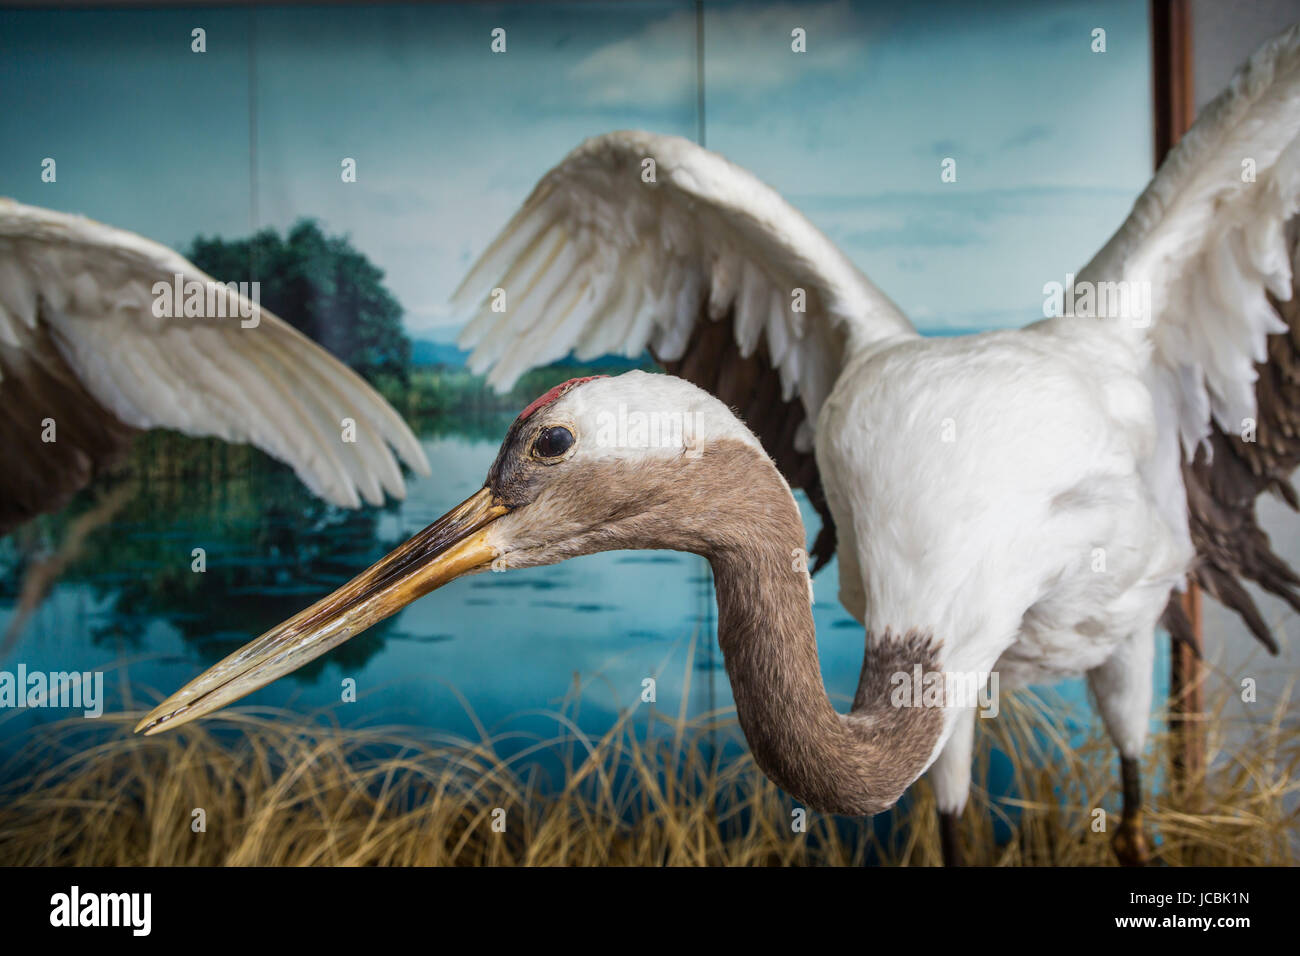 A large crane bird exhibited in Kushiro City, prefecture, Hokkaido, Japan.. - Stock Image